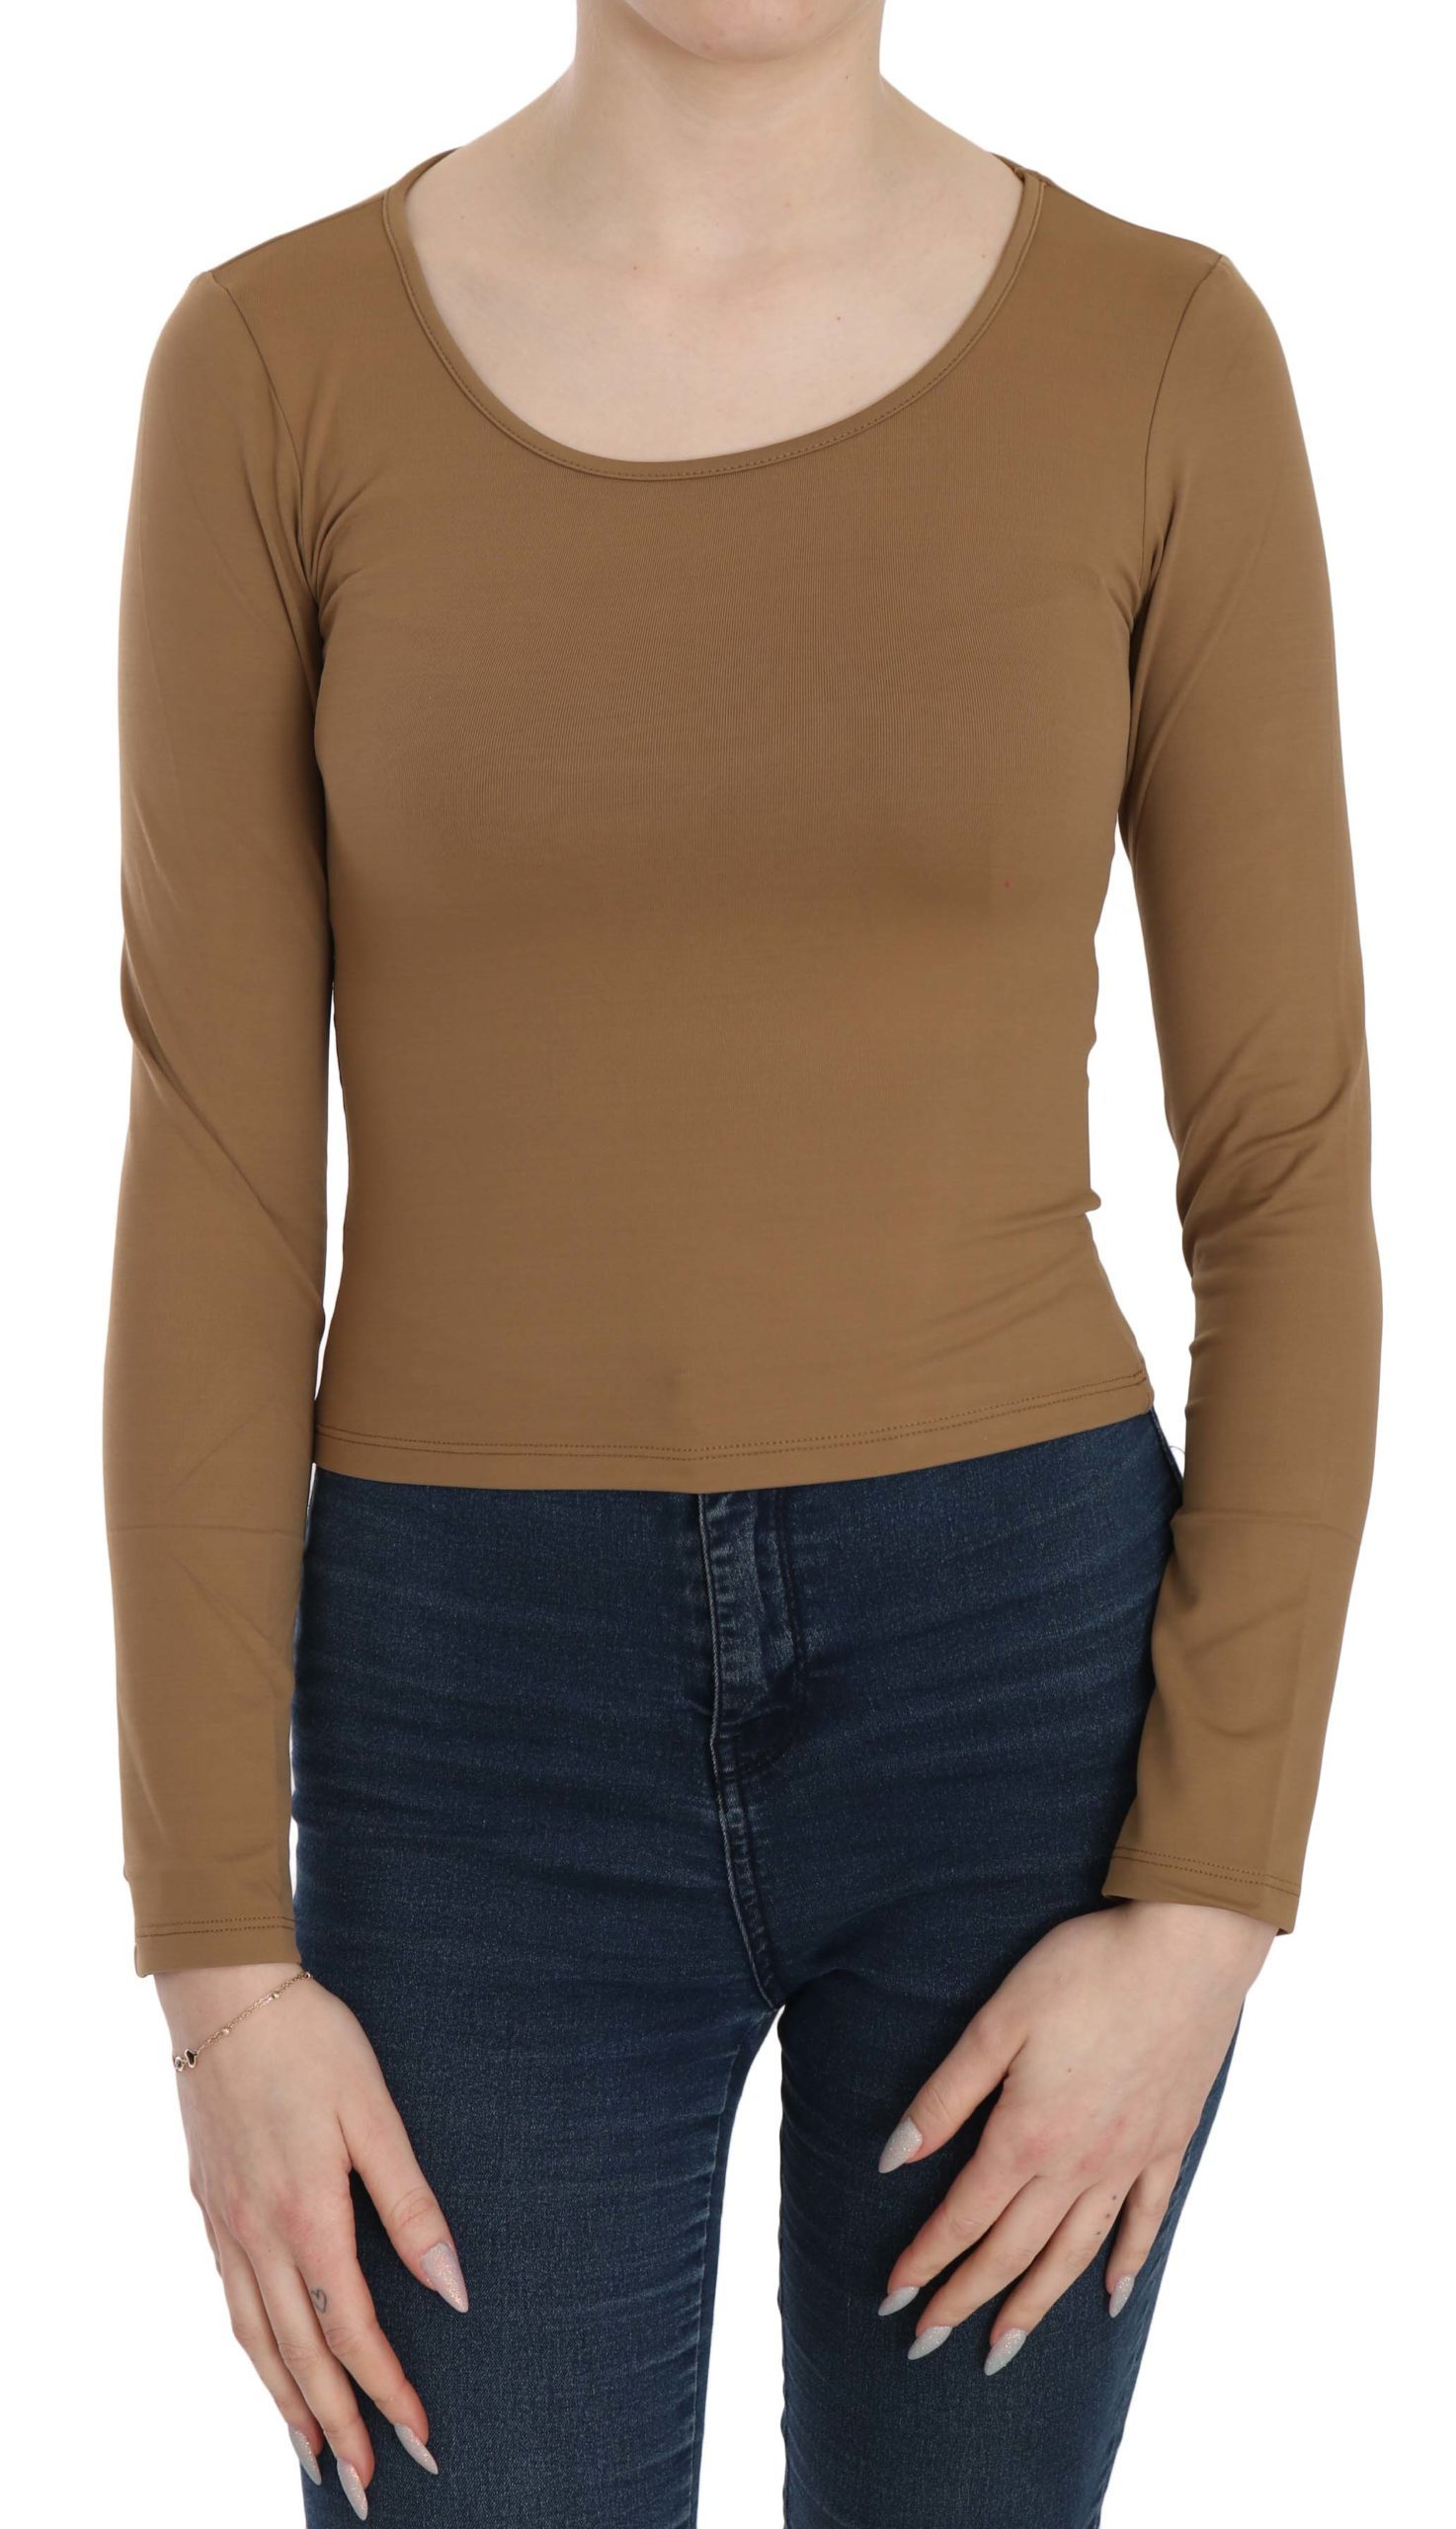 GF Ferre Women's Long Round Neck Sleeve Fitted Tops Brown TSH3931 - IT38|XS